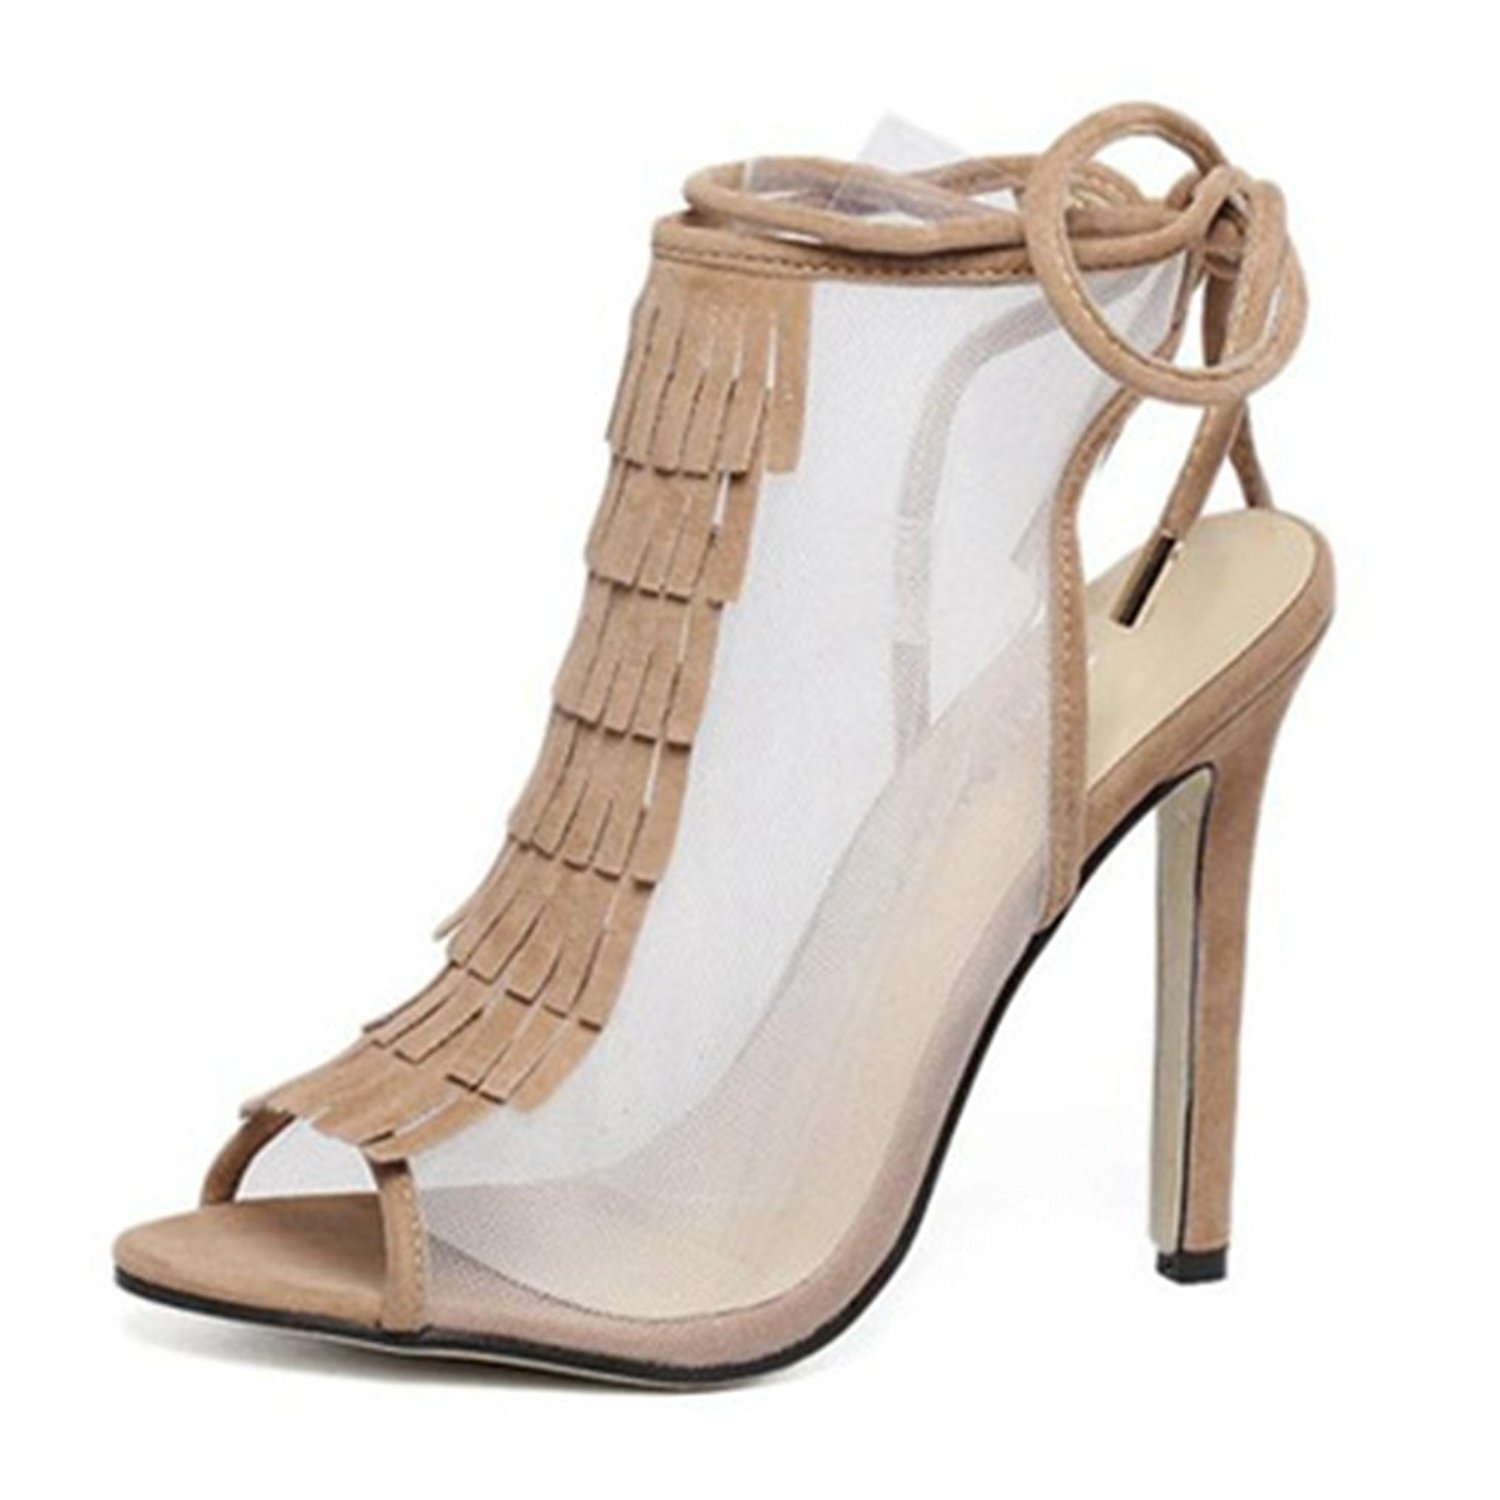 GIY Women's Sexy Fringe Cutout Ankle Strap Sandals Peep Toe Lace up Net Anti-Slip Stiletto High Heel Pump